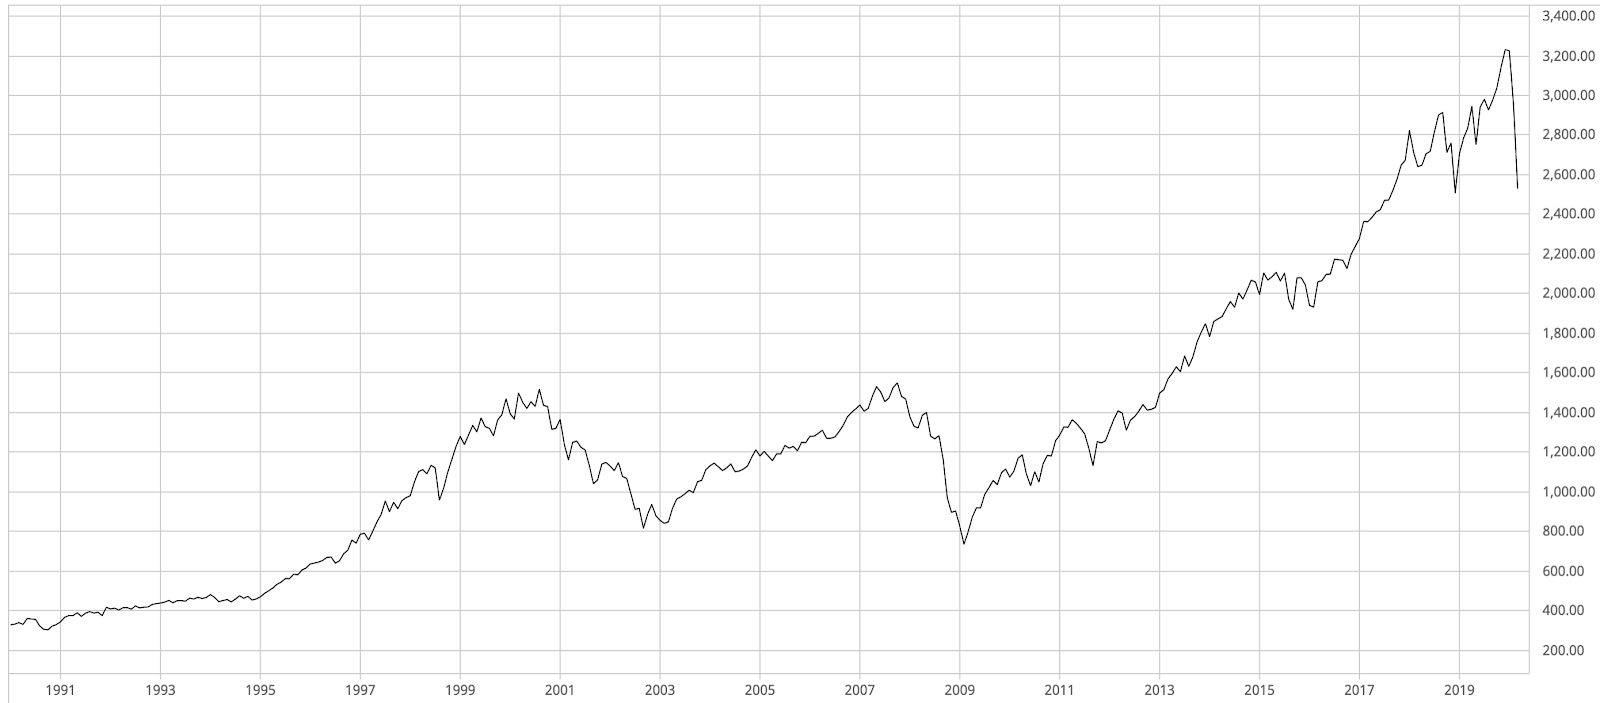 30 Year graph of the S&P 500 between March 1990 and March 2020